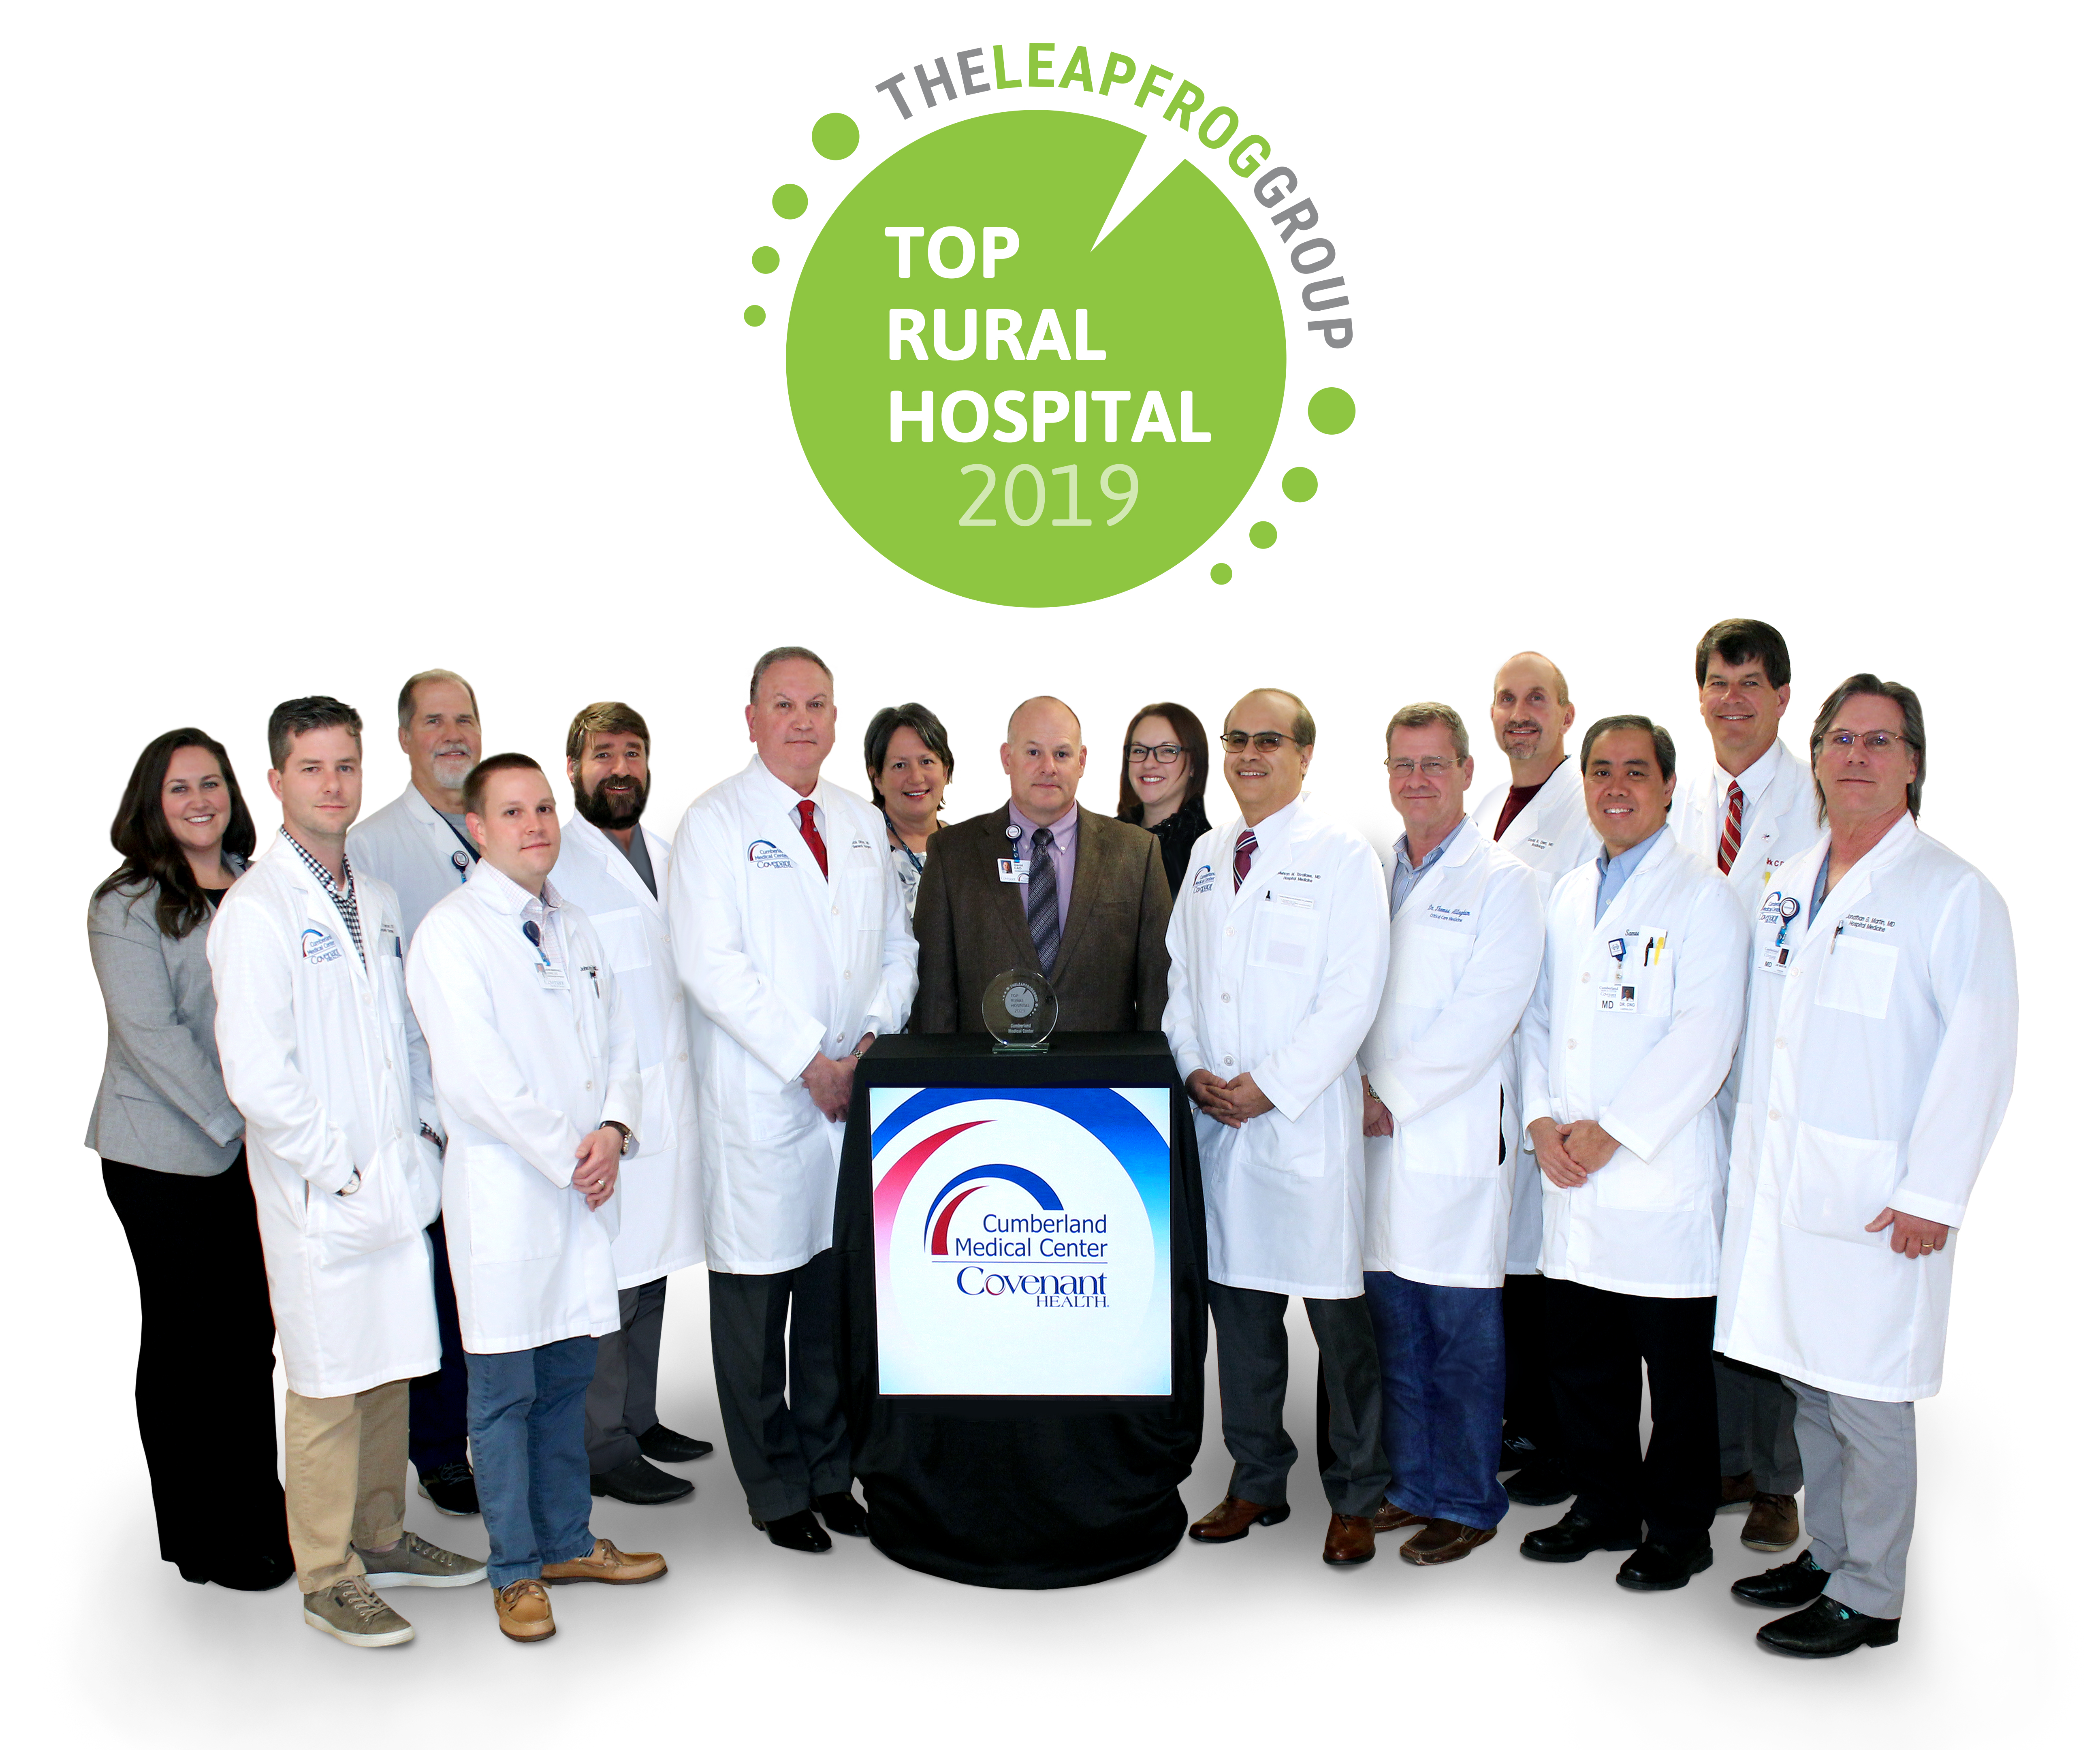 CMC members with Top Rural Hospital award